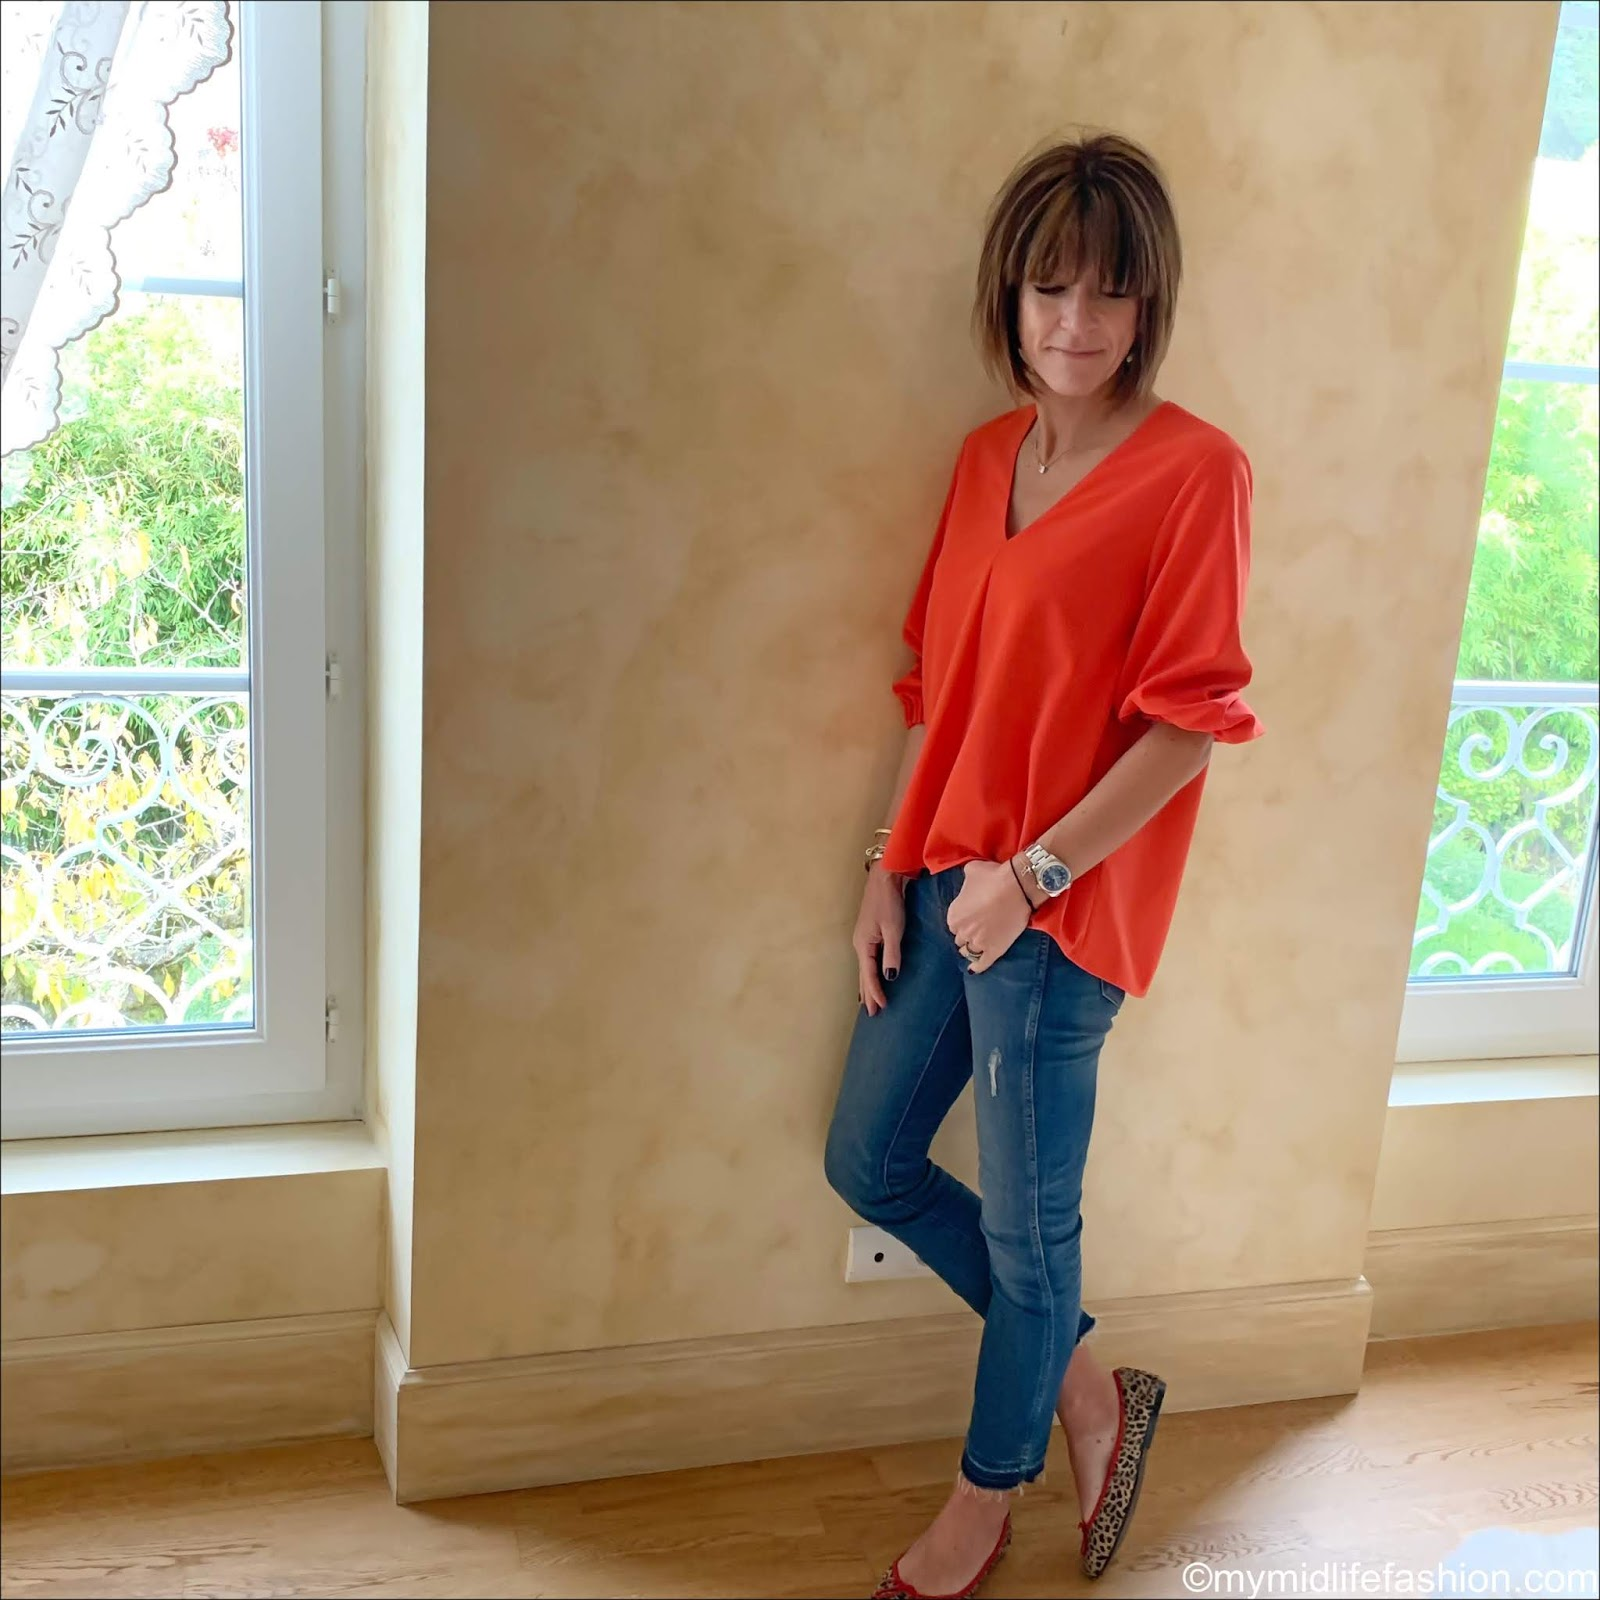 my midlife fashion, tibi blouse, j crew jeans, French sole India cheetah ballet pumps